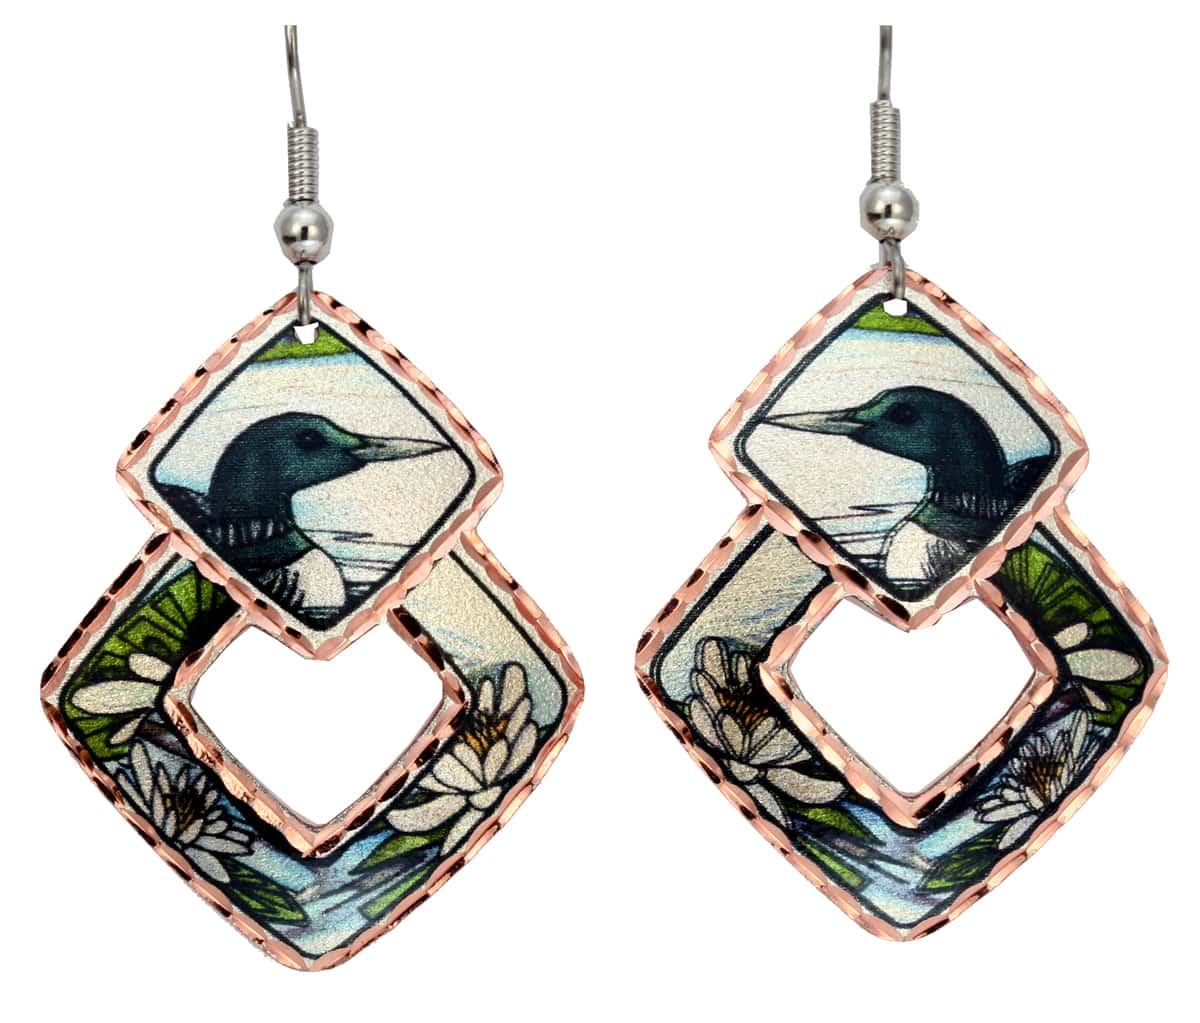 Unique Earrings with Remarkable Loon Artwork